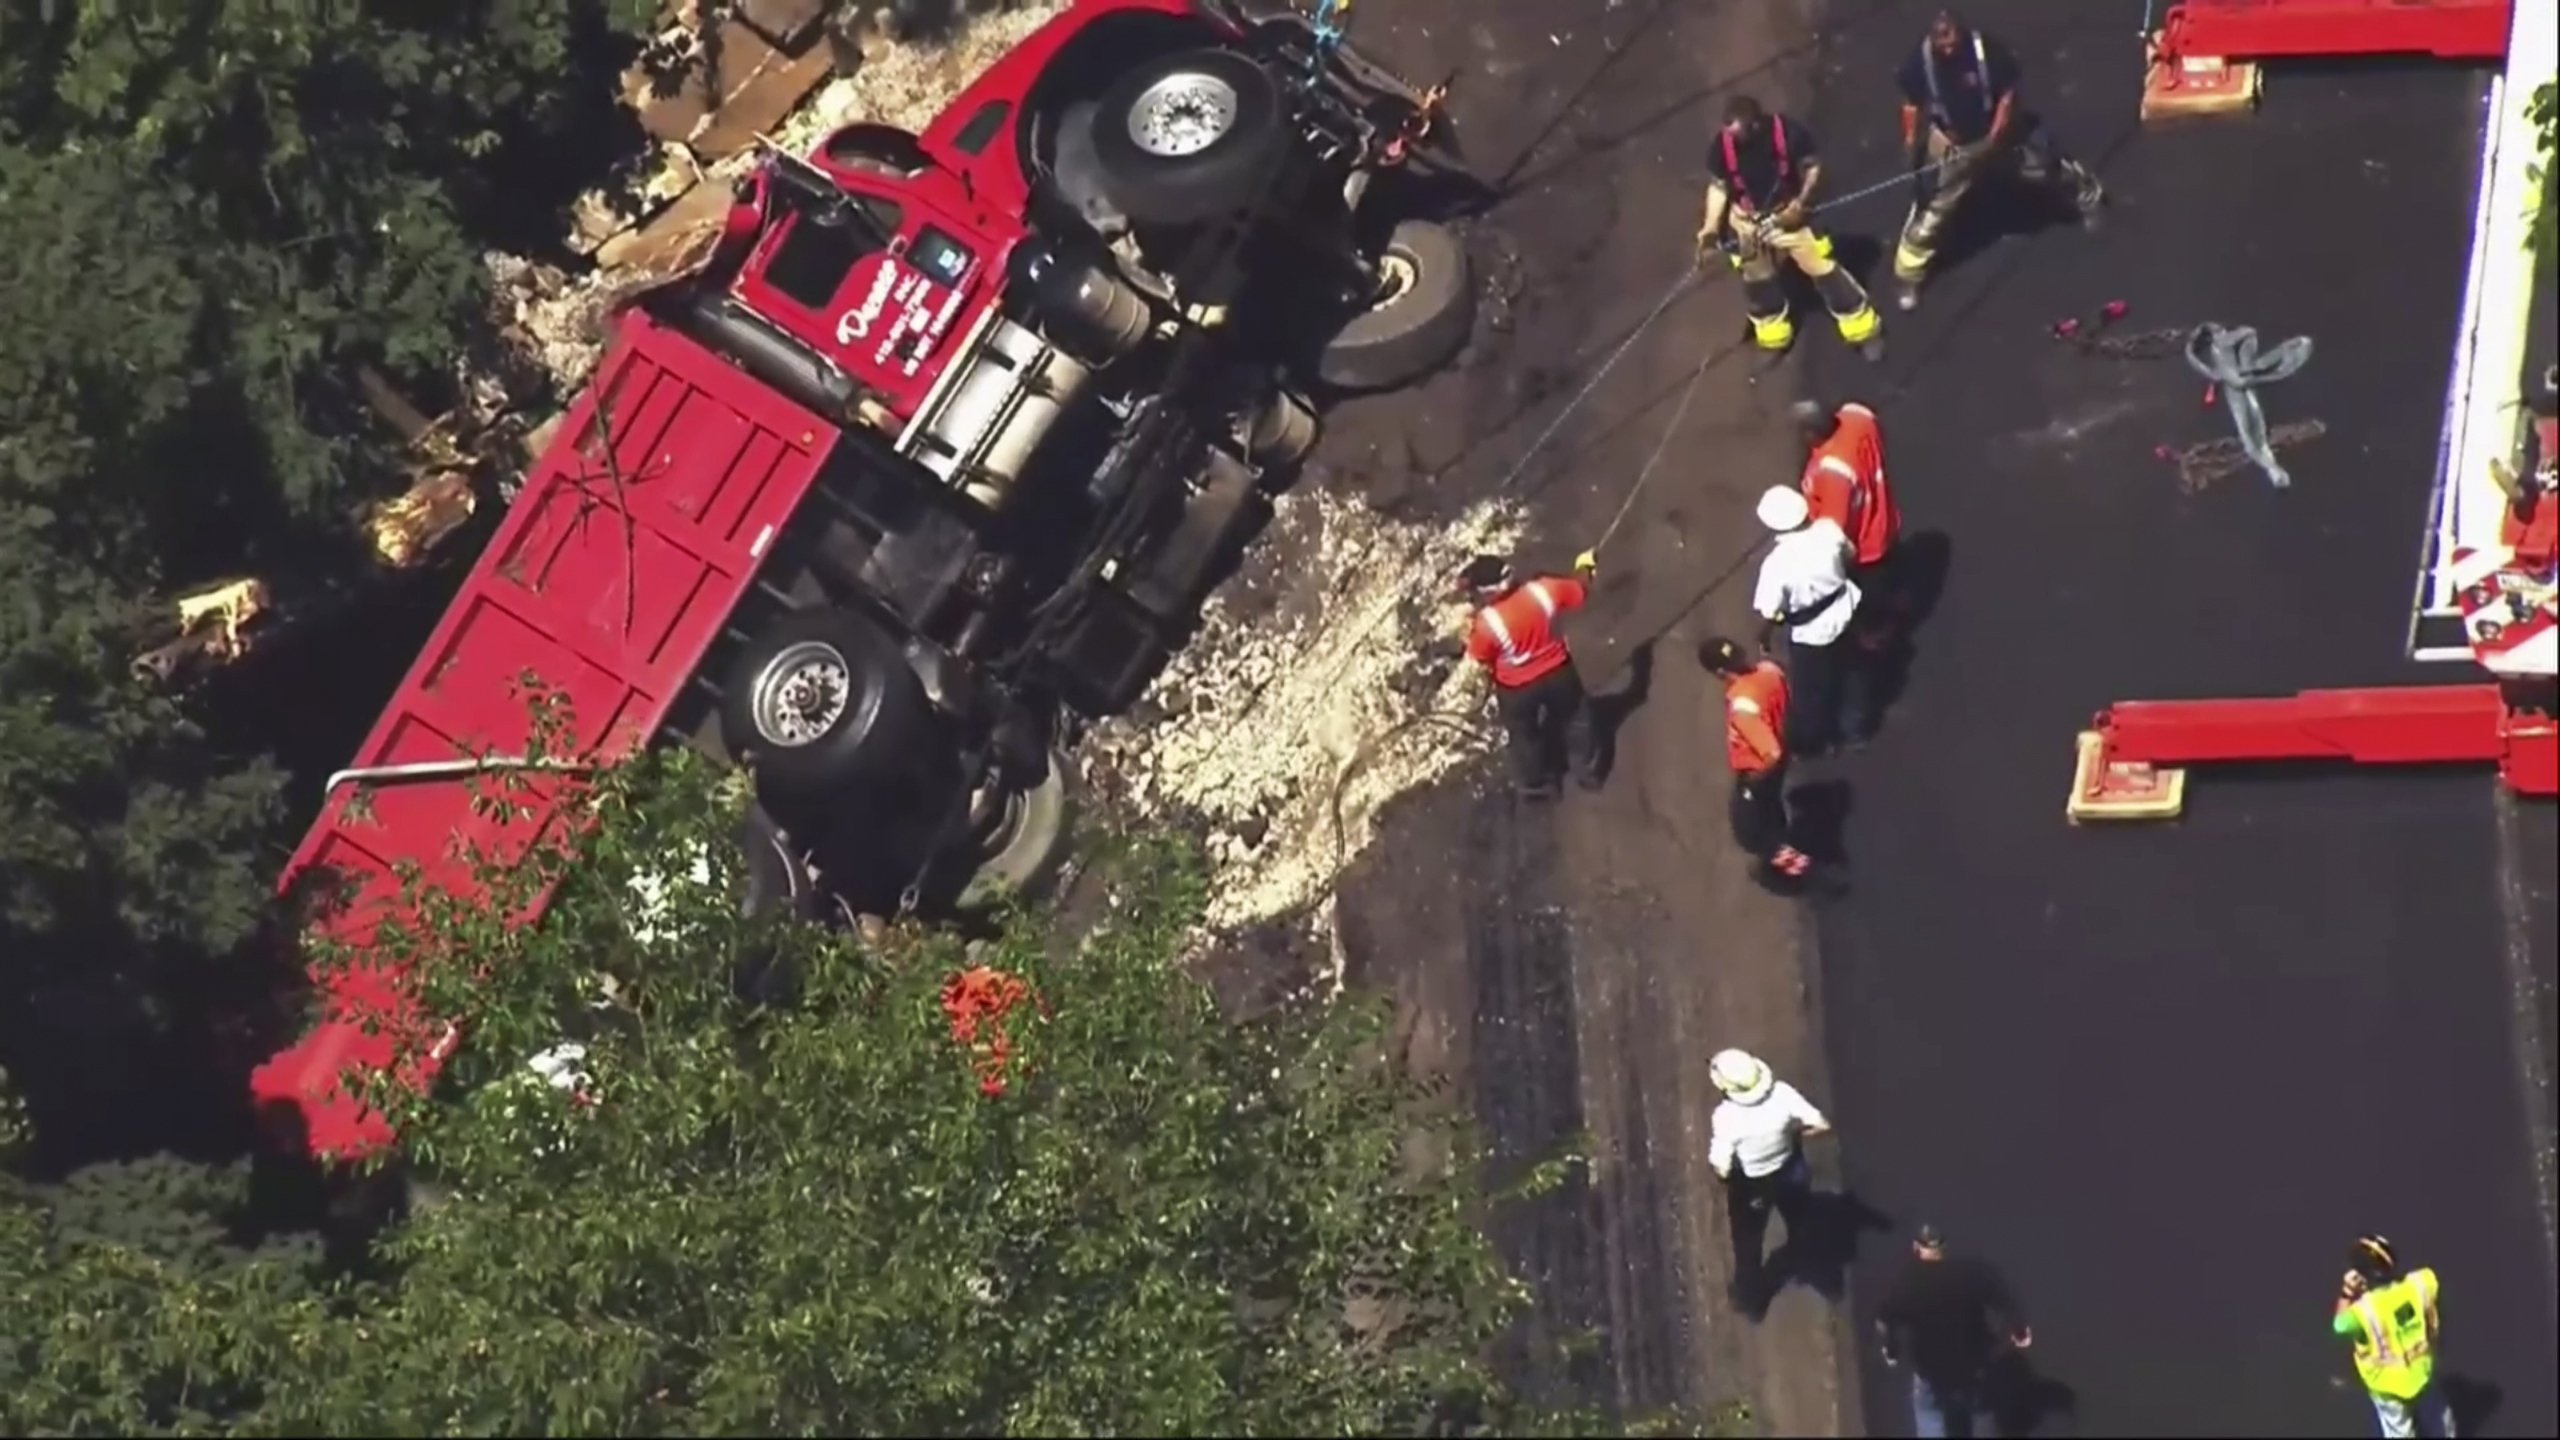 Driver rescued after truck goes down Pittsburgh hillside